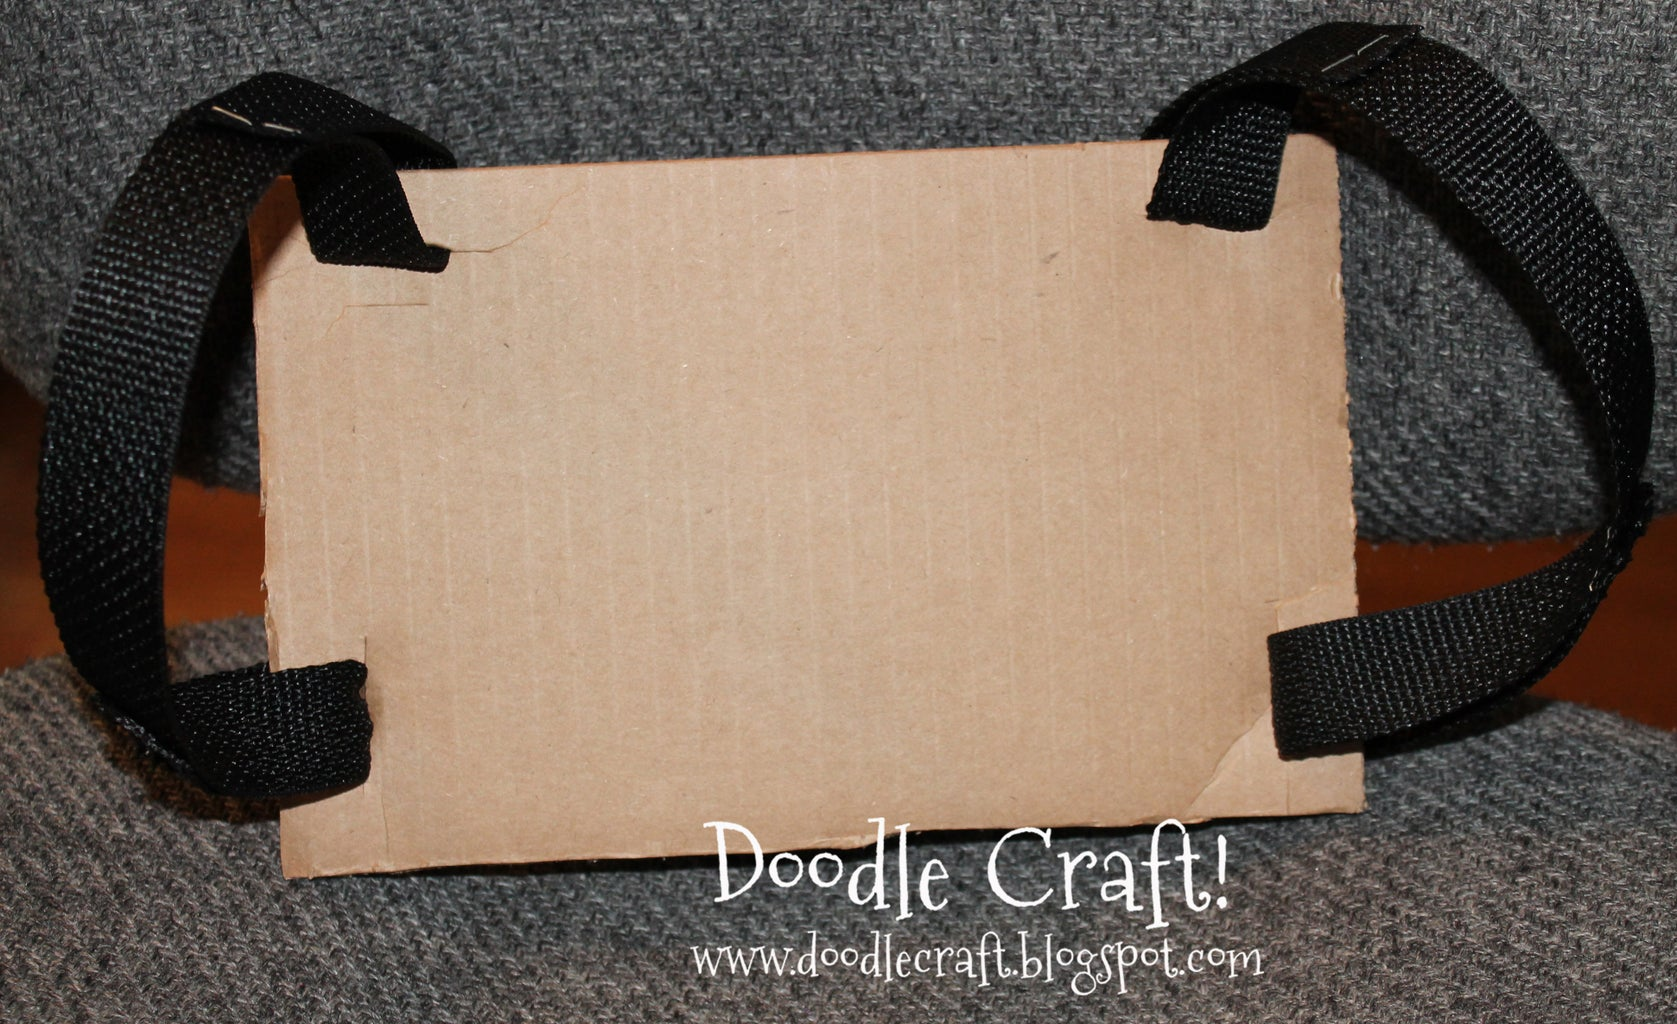 Create the Backpack From Cardboard and Webbing!